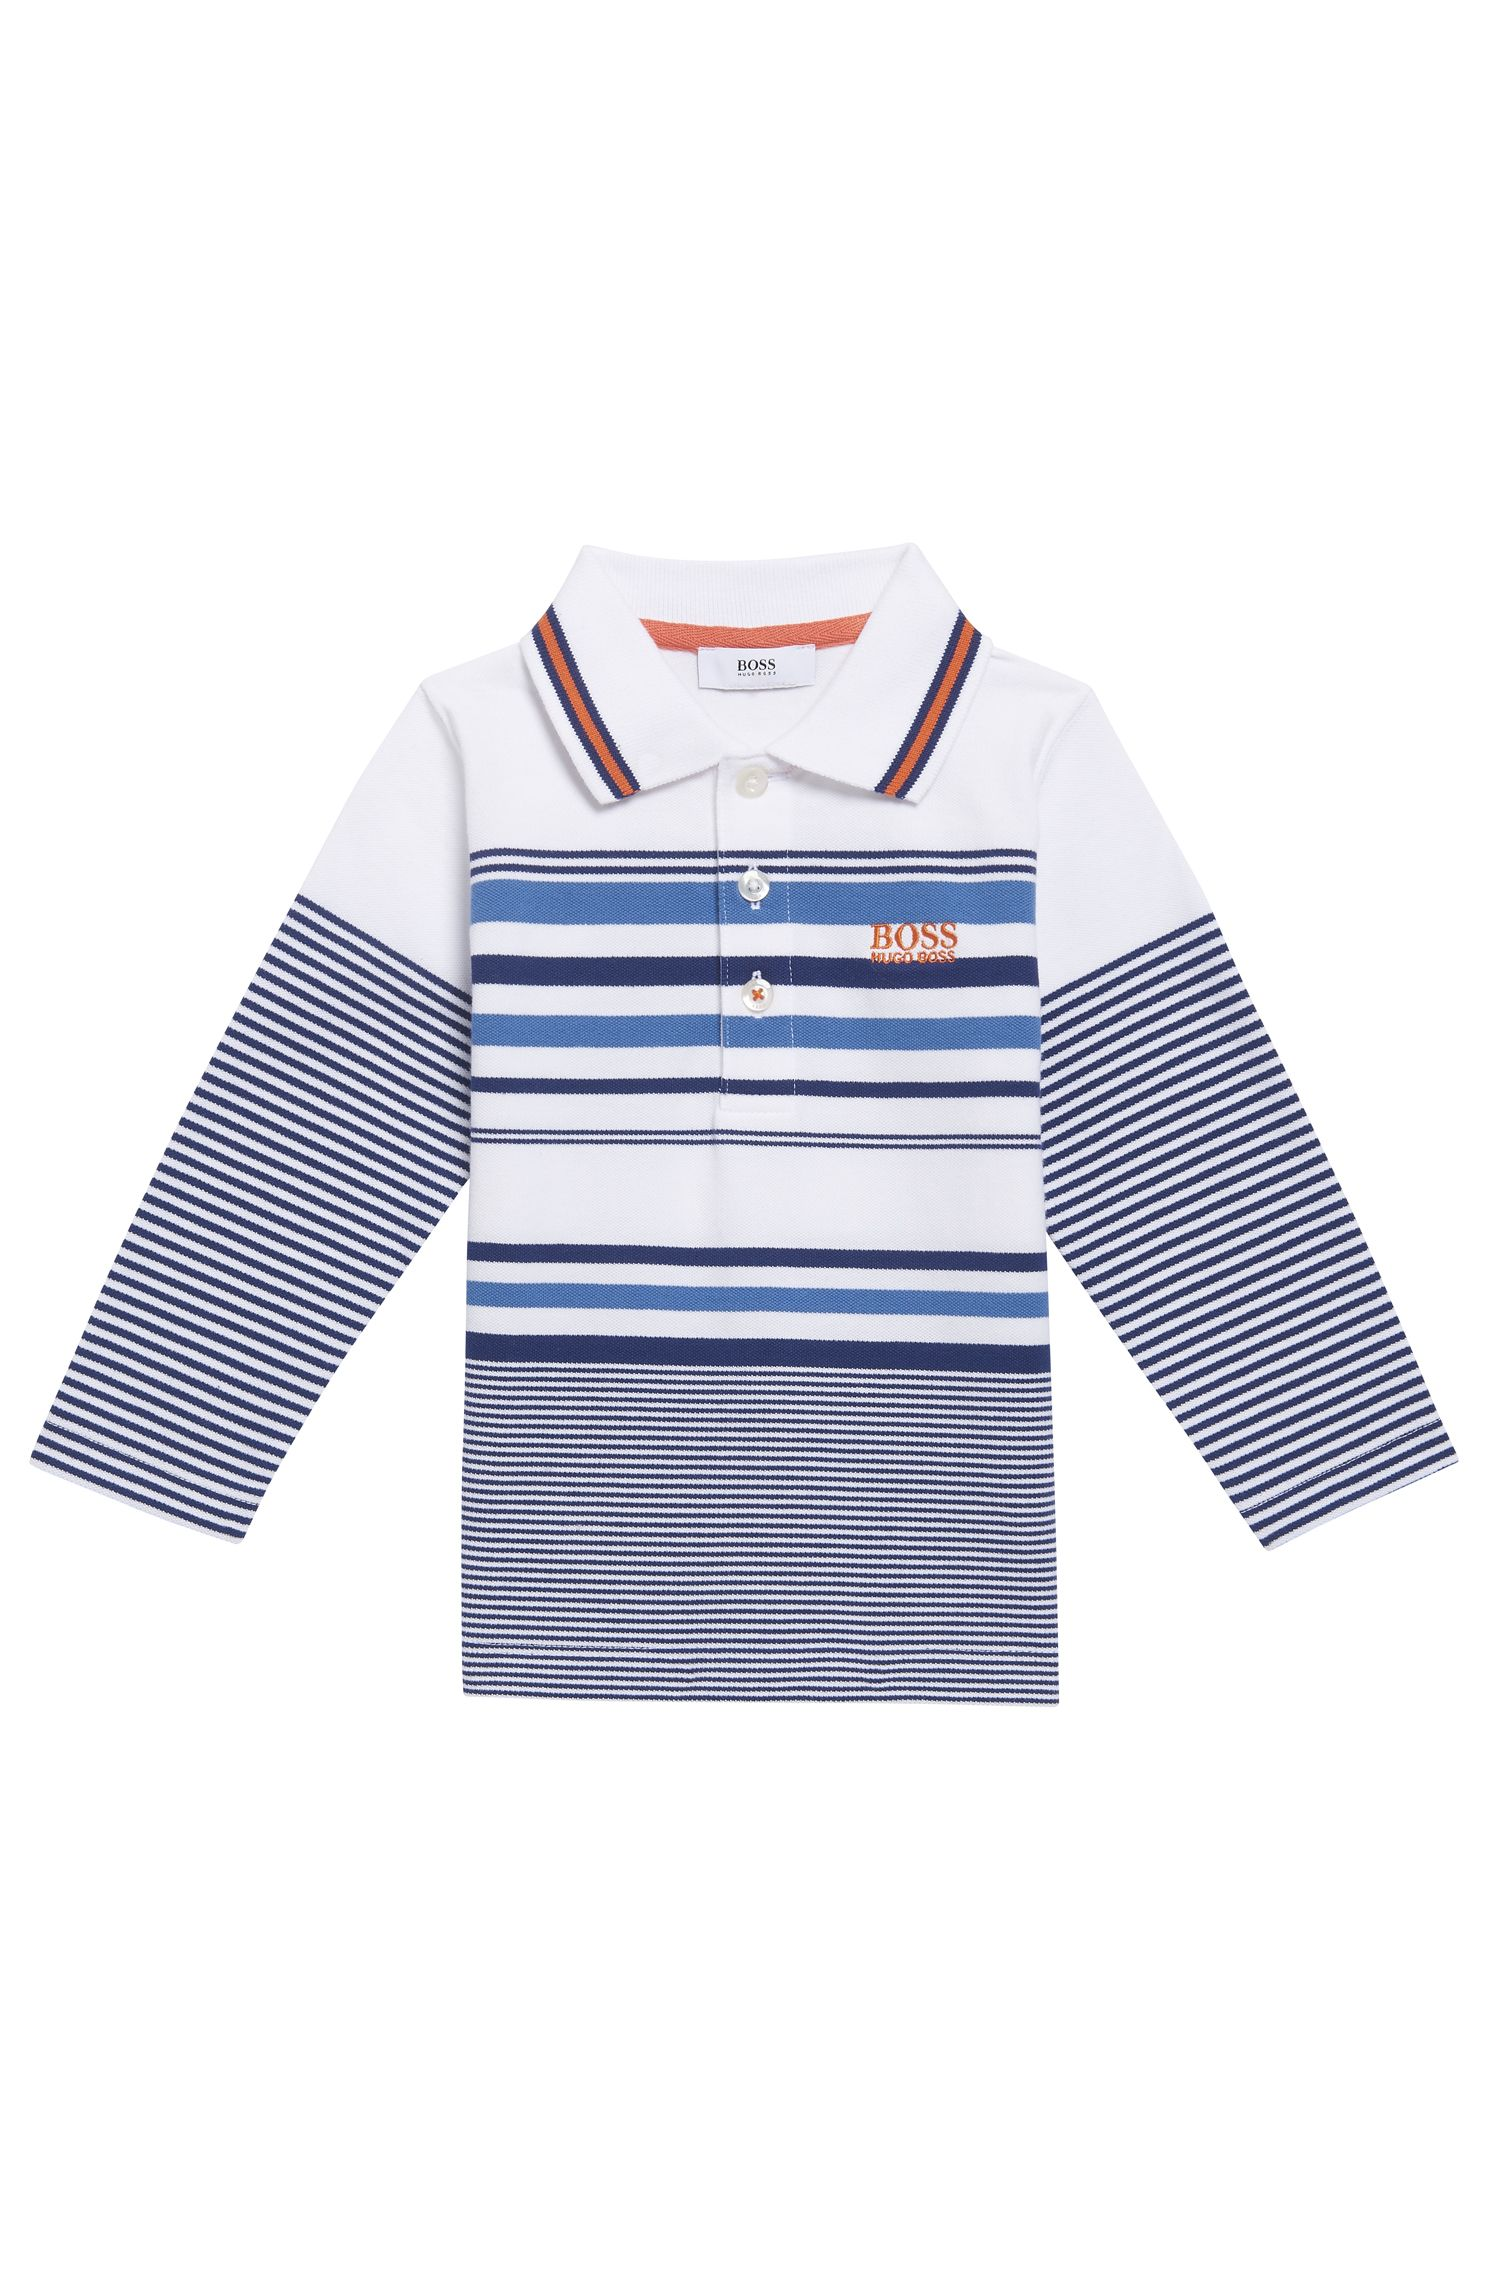 'J05498' | Toddler Stretch Cotton Blend Polo Shirt